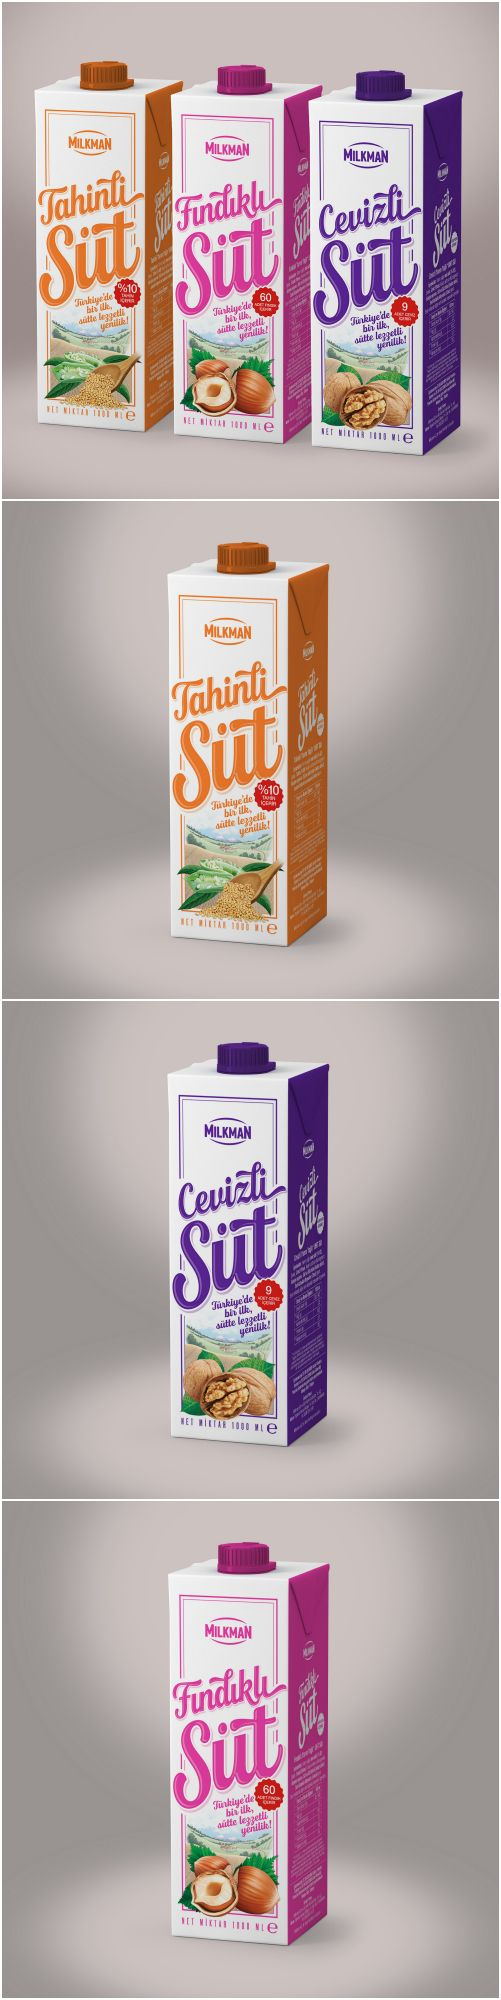 Brand Identity And Packaging Designed For Milkman S Milk Products World Brand Design Society Dairy Packaging Dairy Drinks Packaging Design